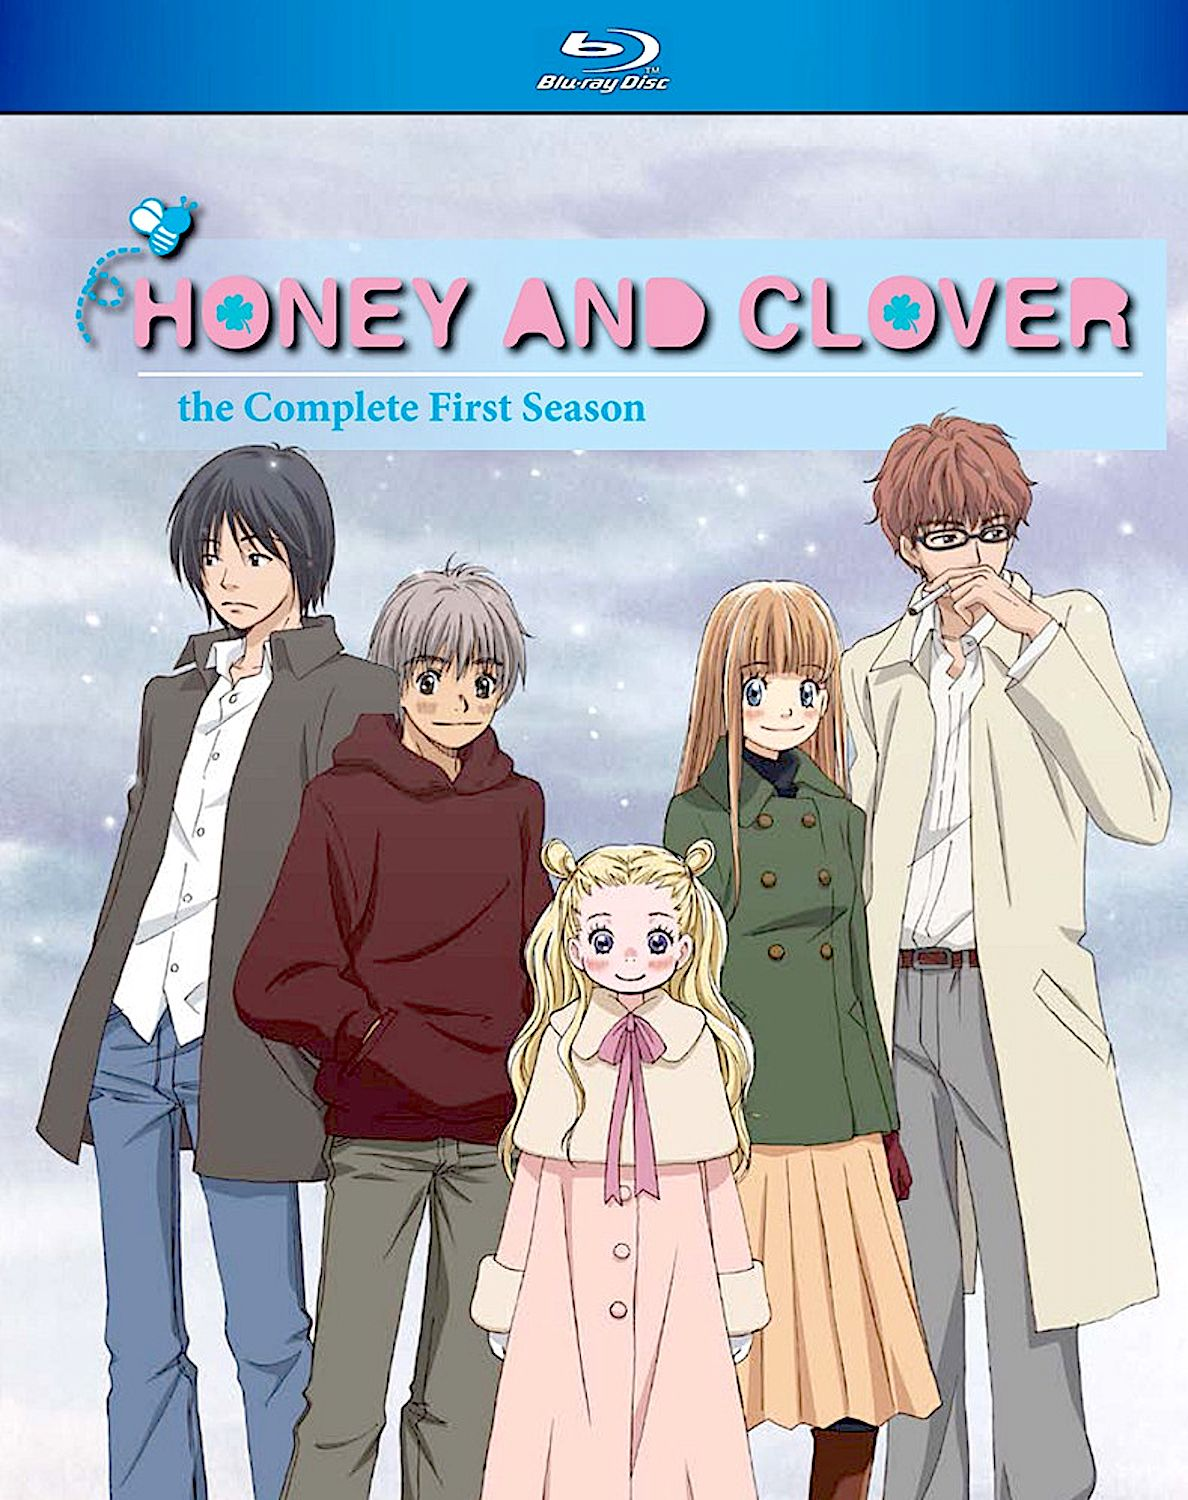 HONEY AND CLOVER THE COMPLETE FIRST SEASON BLURAY